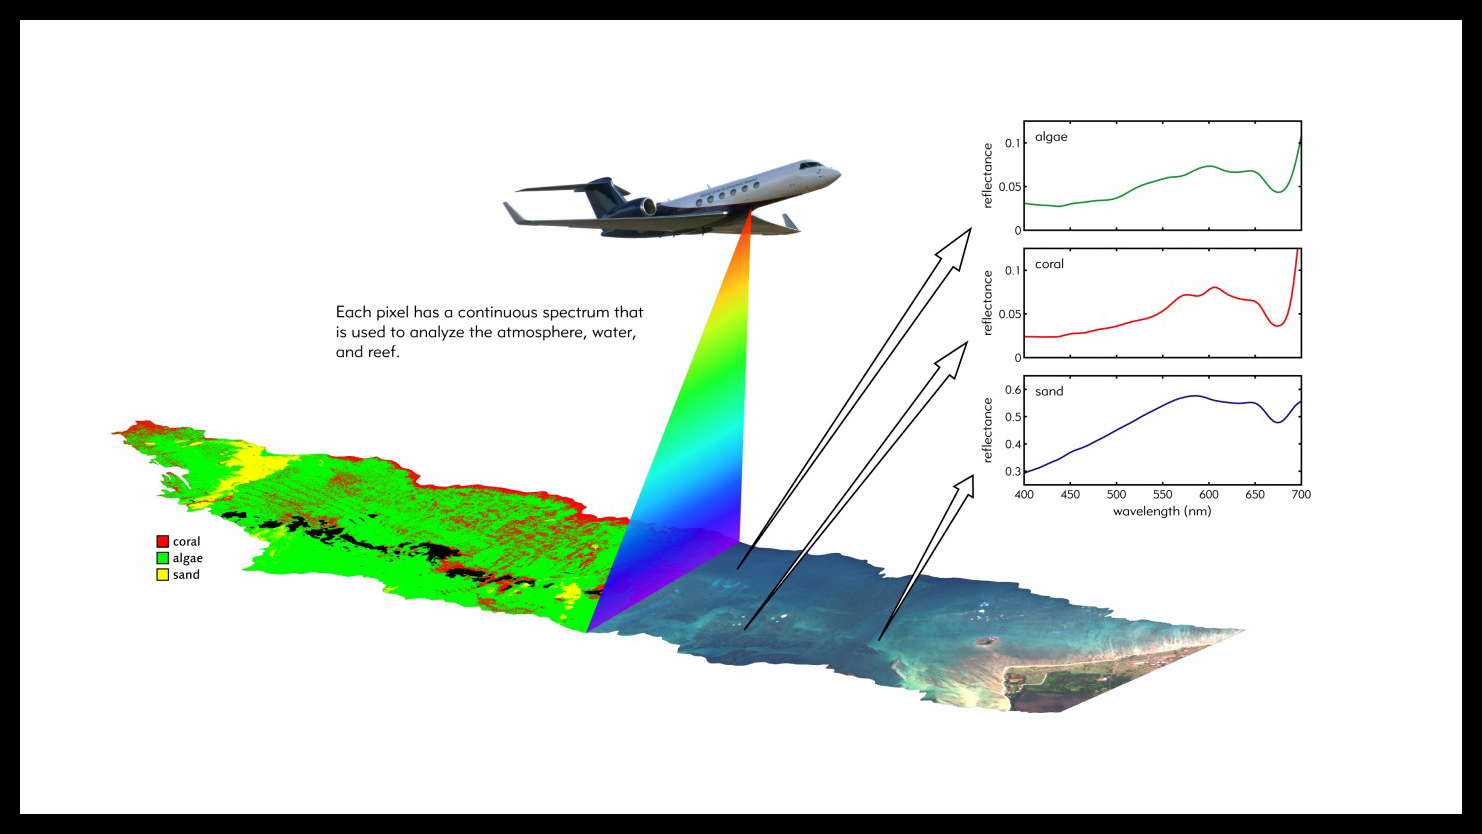 Diagram of an airplane flying over a section of ocean with an example of the spectral data that CORAL collects